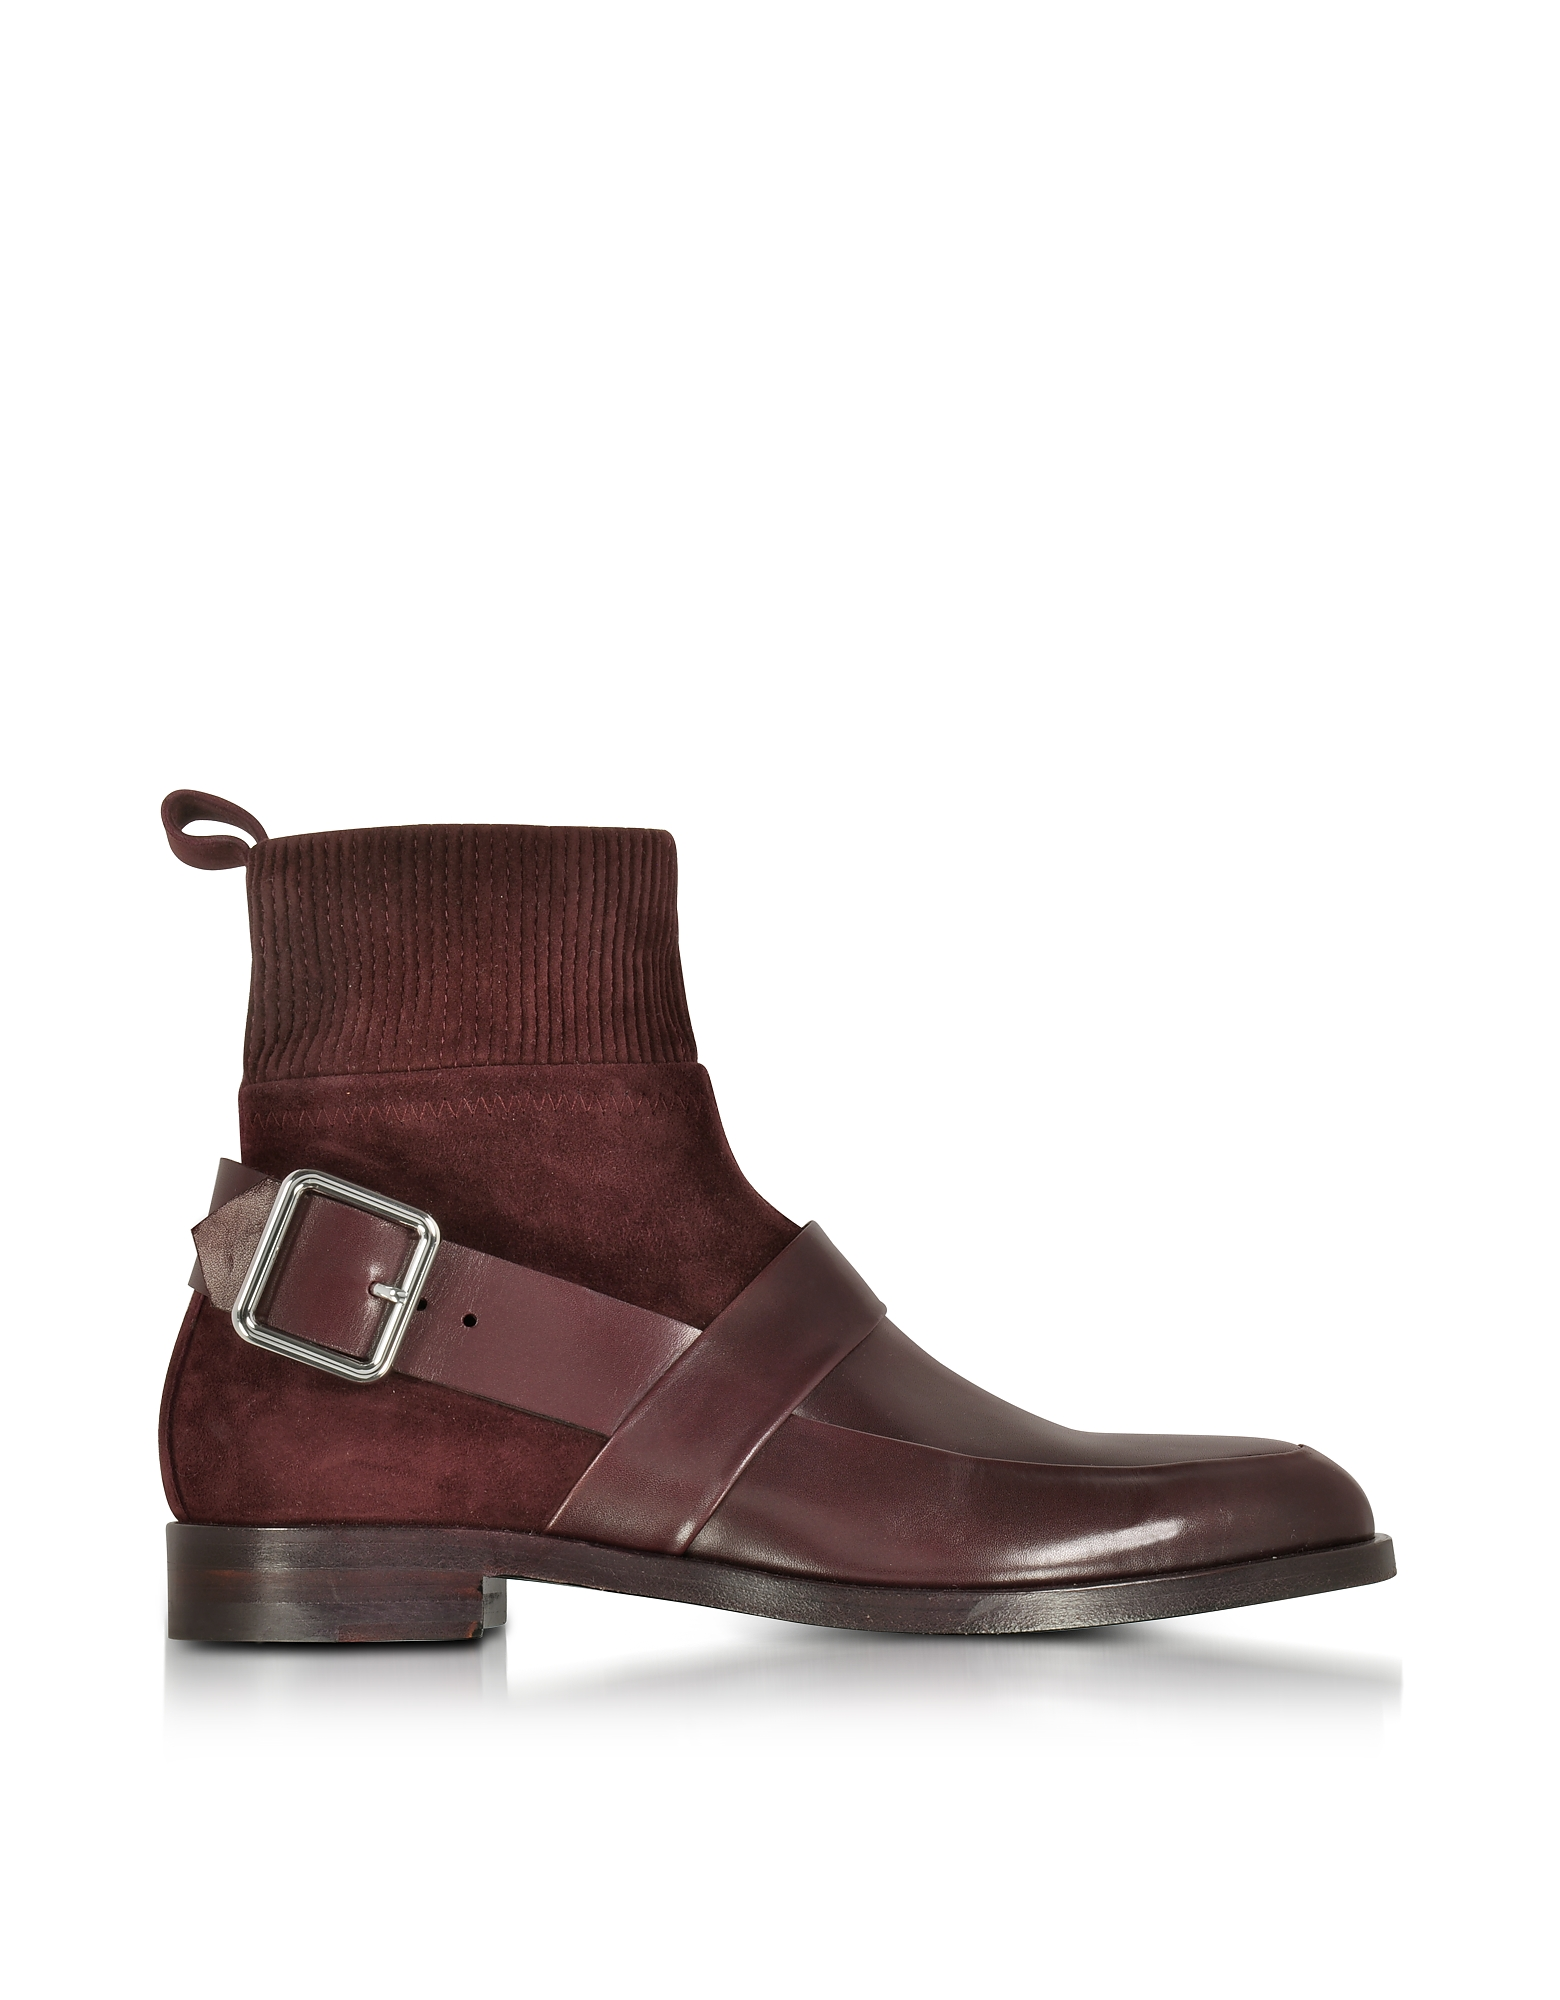 Pierre Hardy Shoes, Fusion Burgundy Suede & Leather Ankle Boot